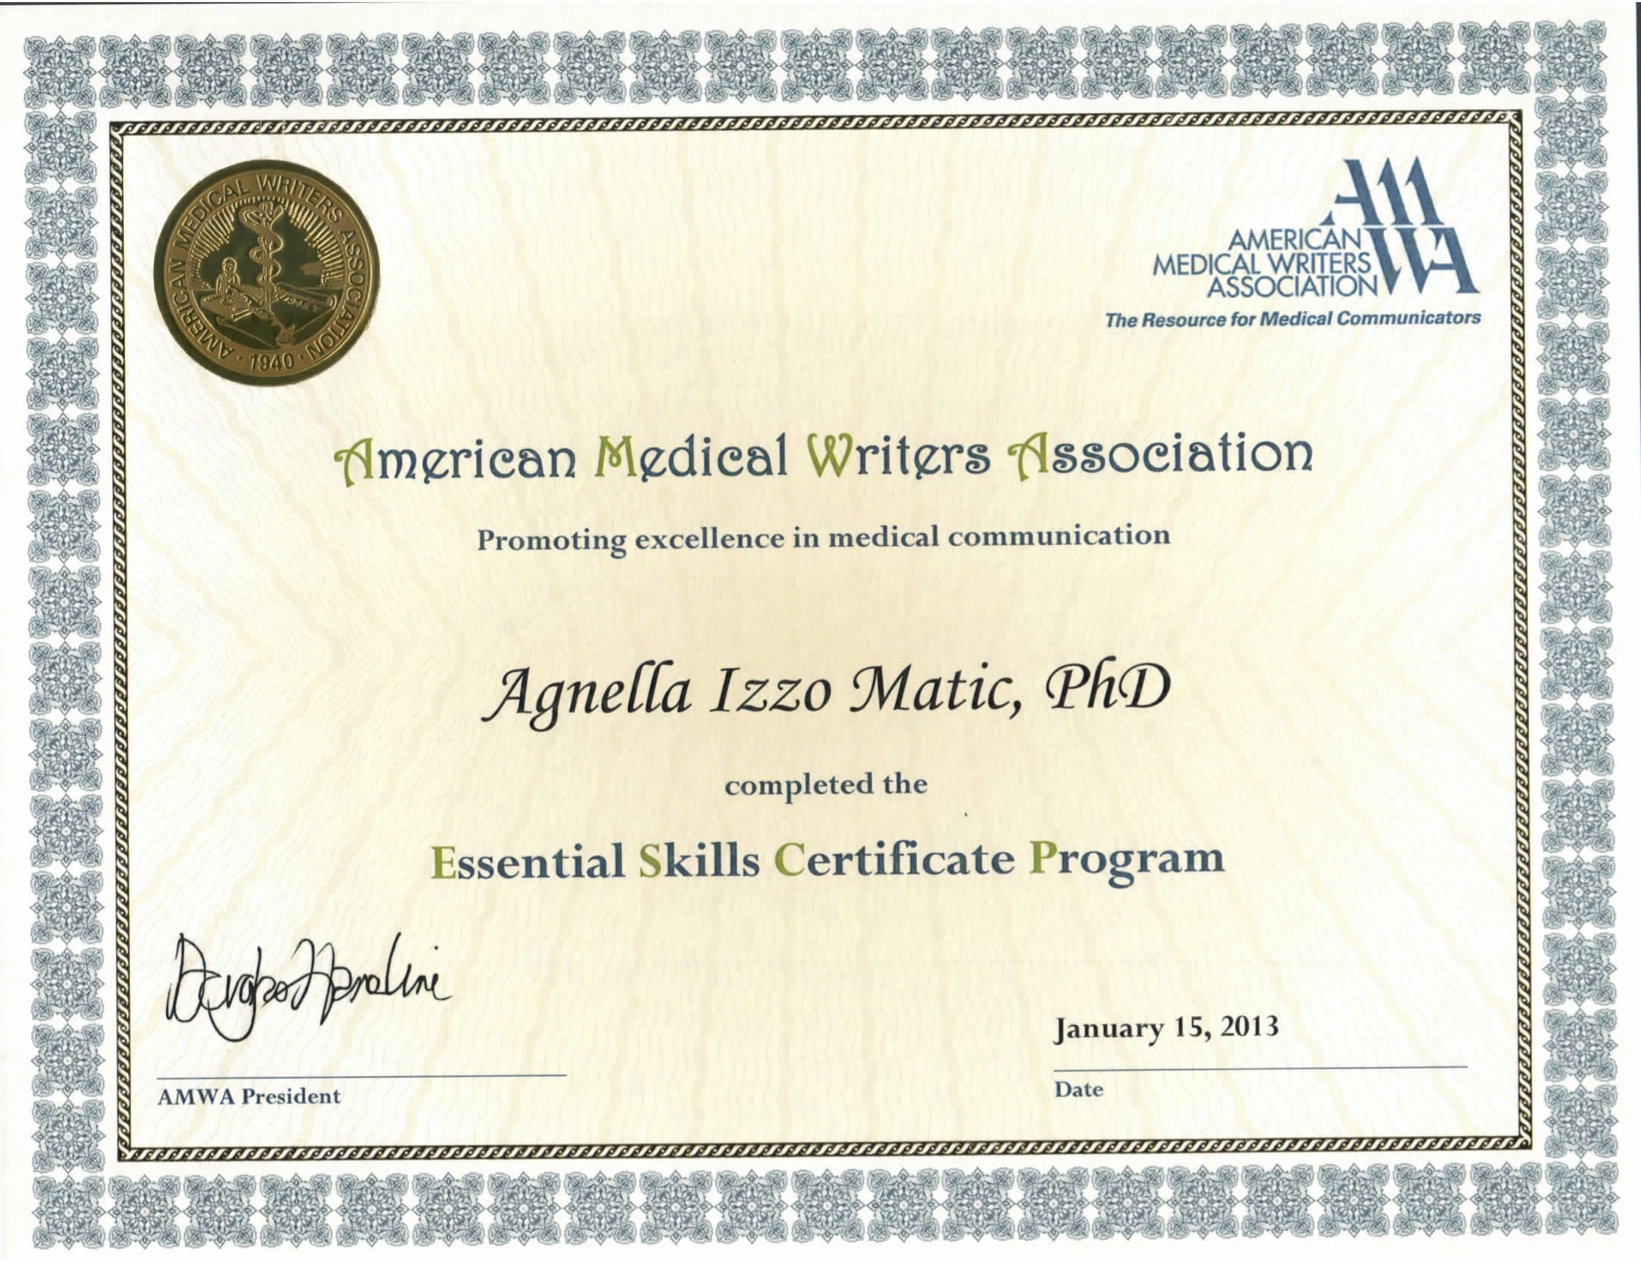 What Education And Certification Does The Writer Have Aim Biomedical